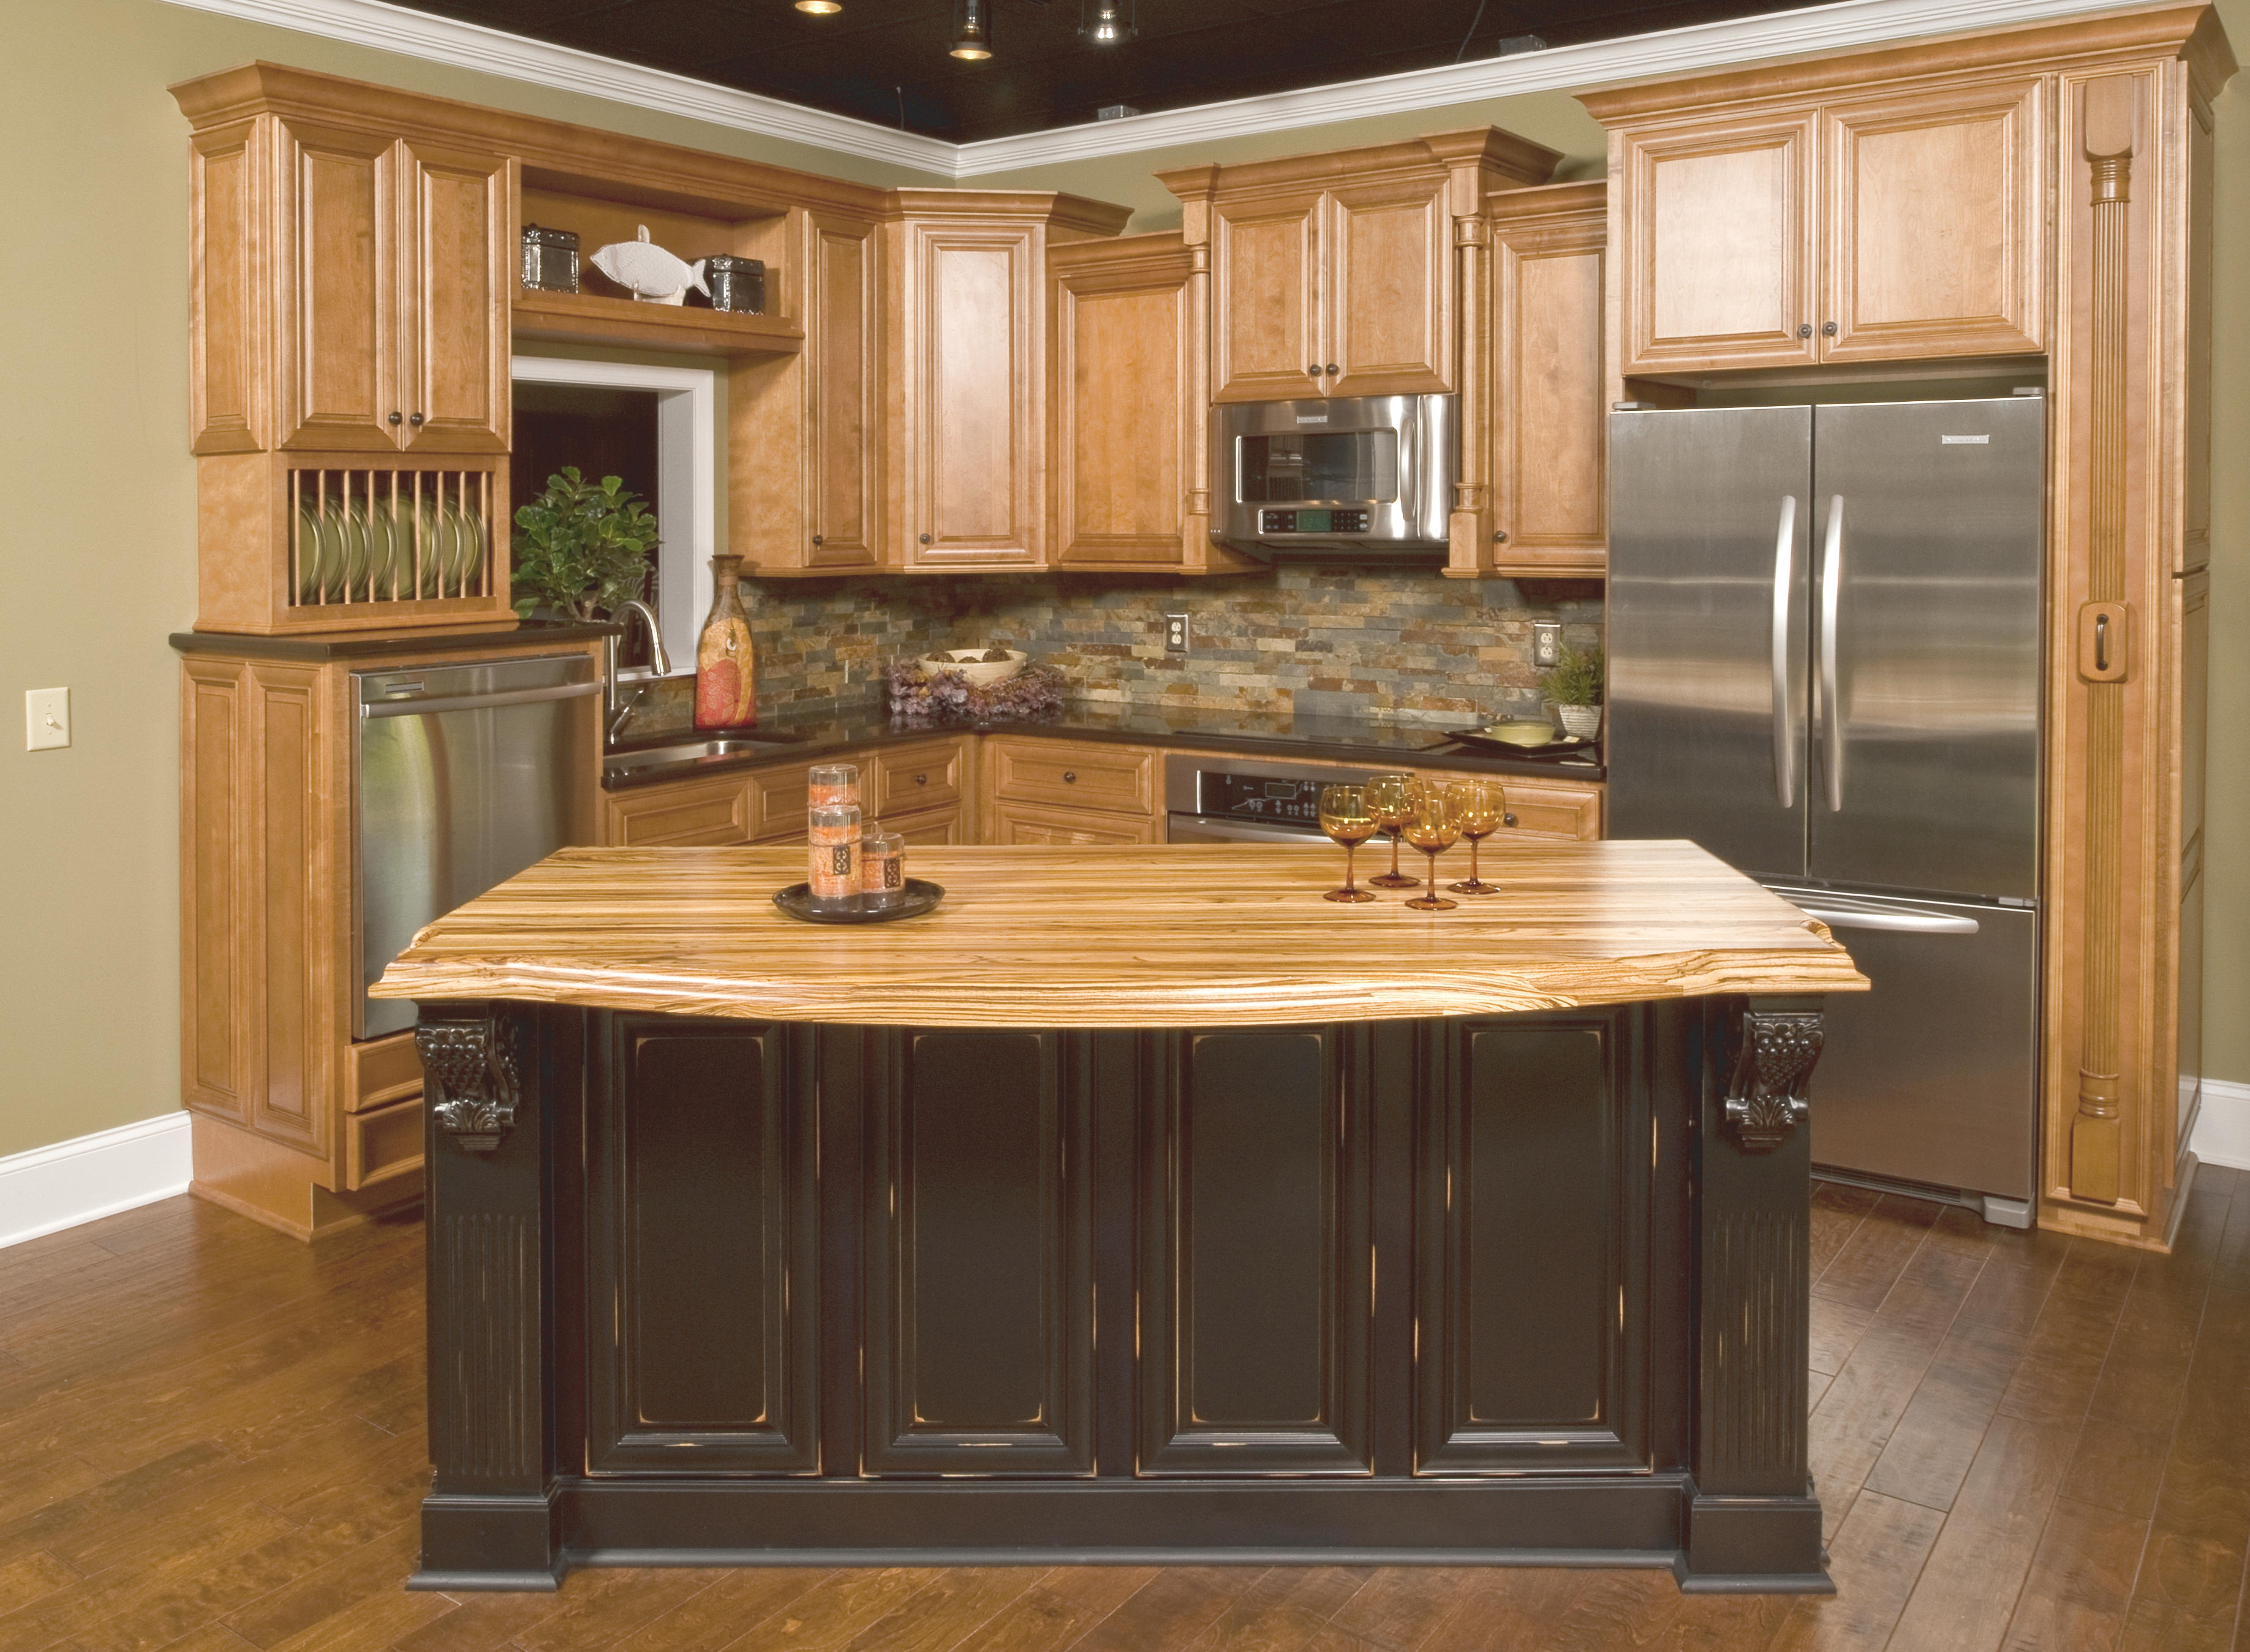 Pictures Of Distressed Kitchen Cabinets